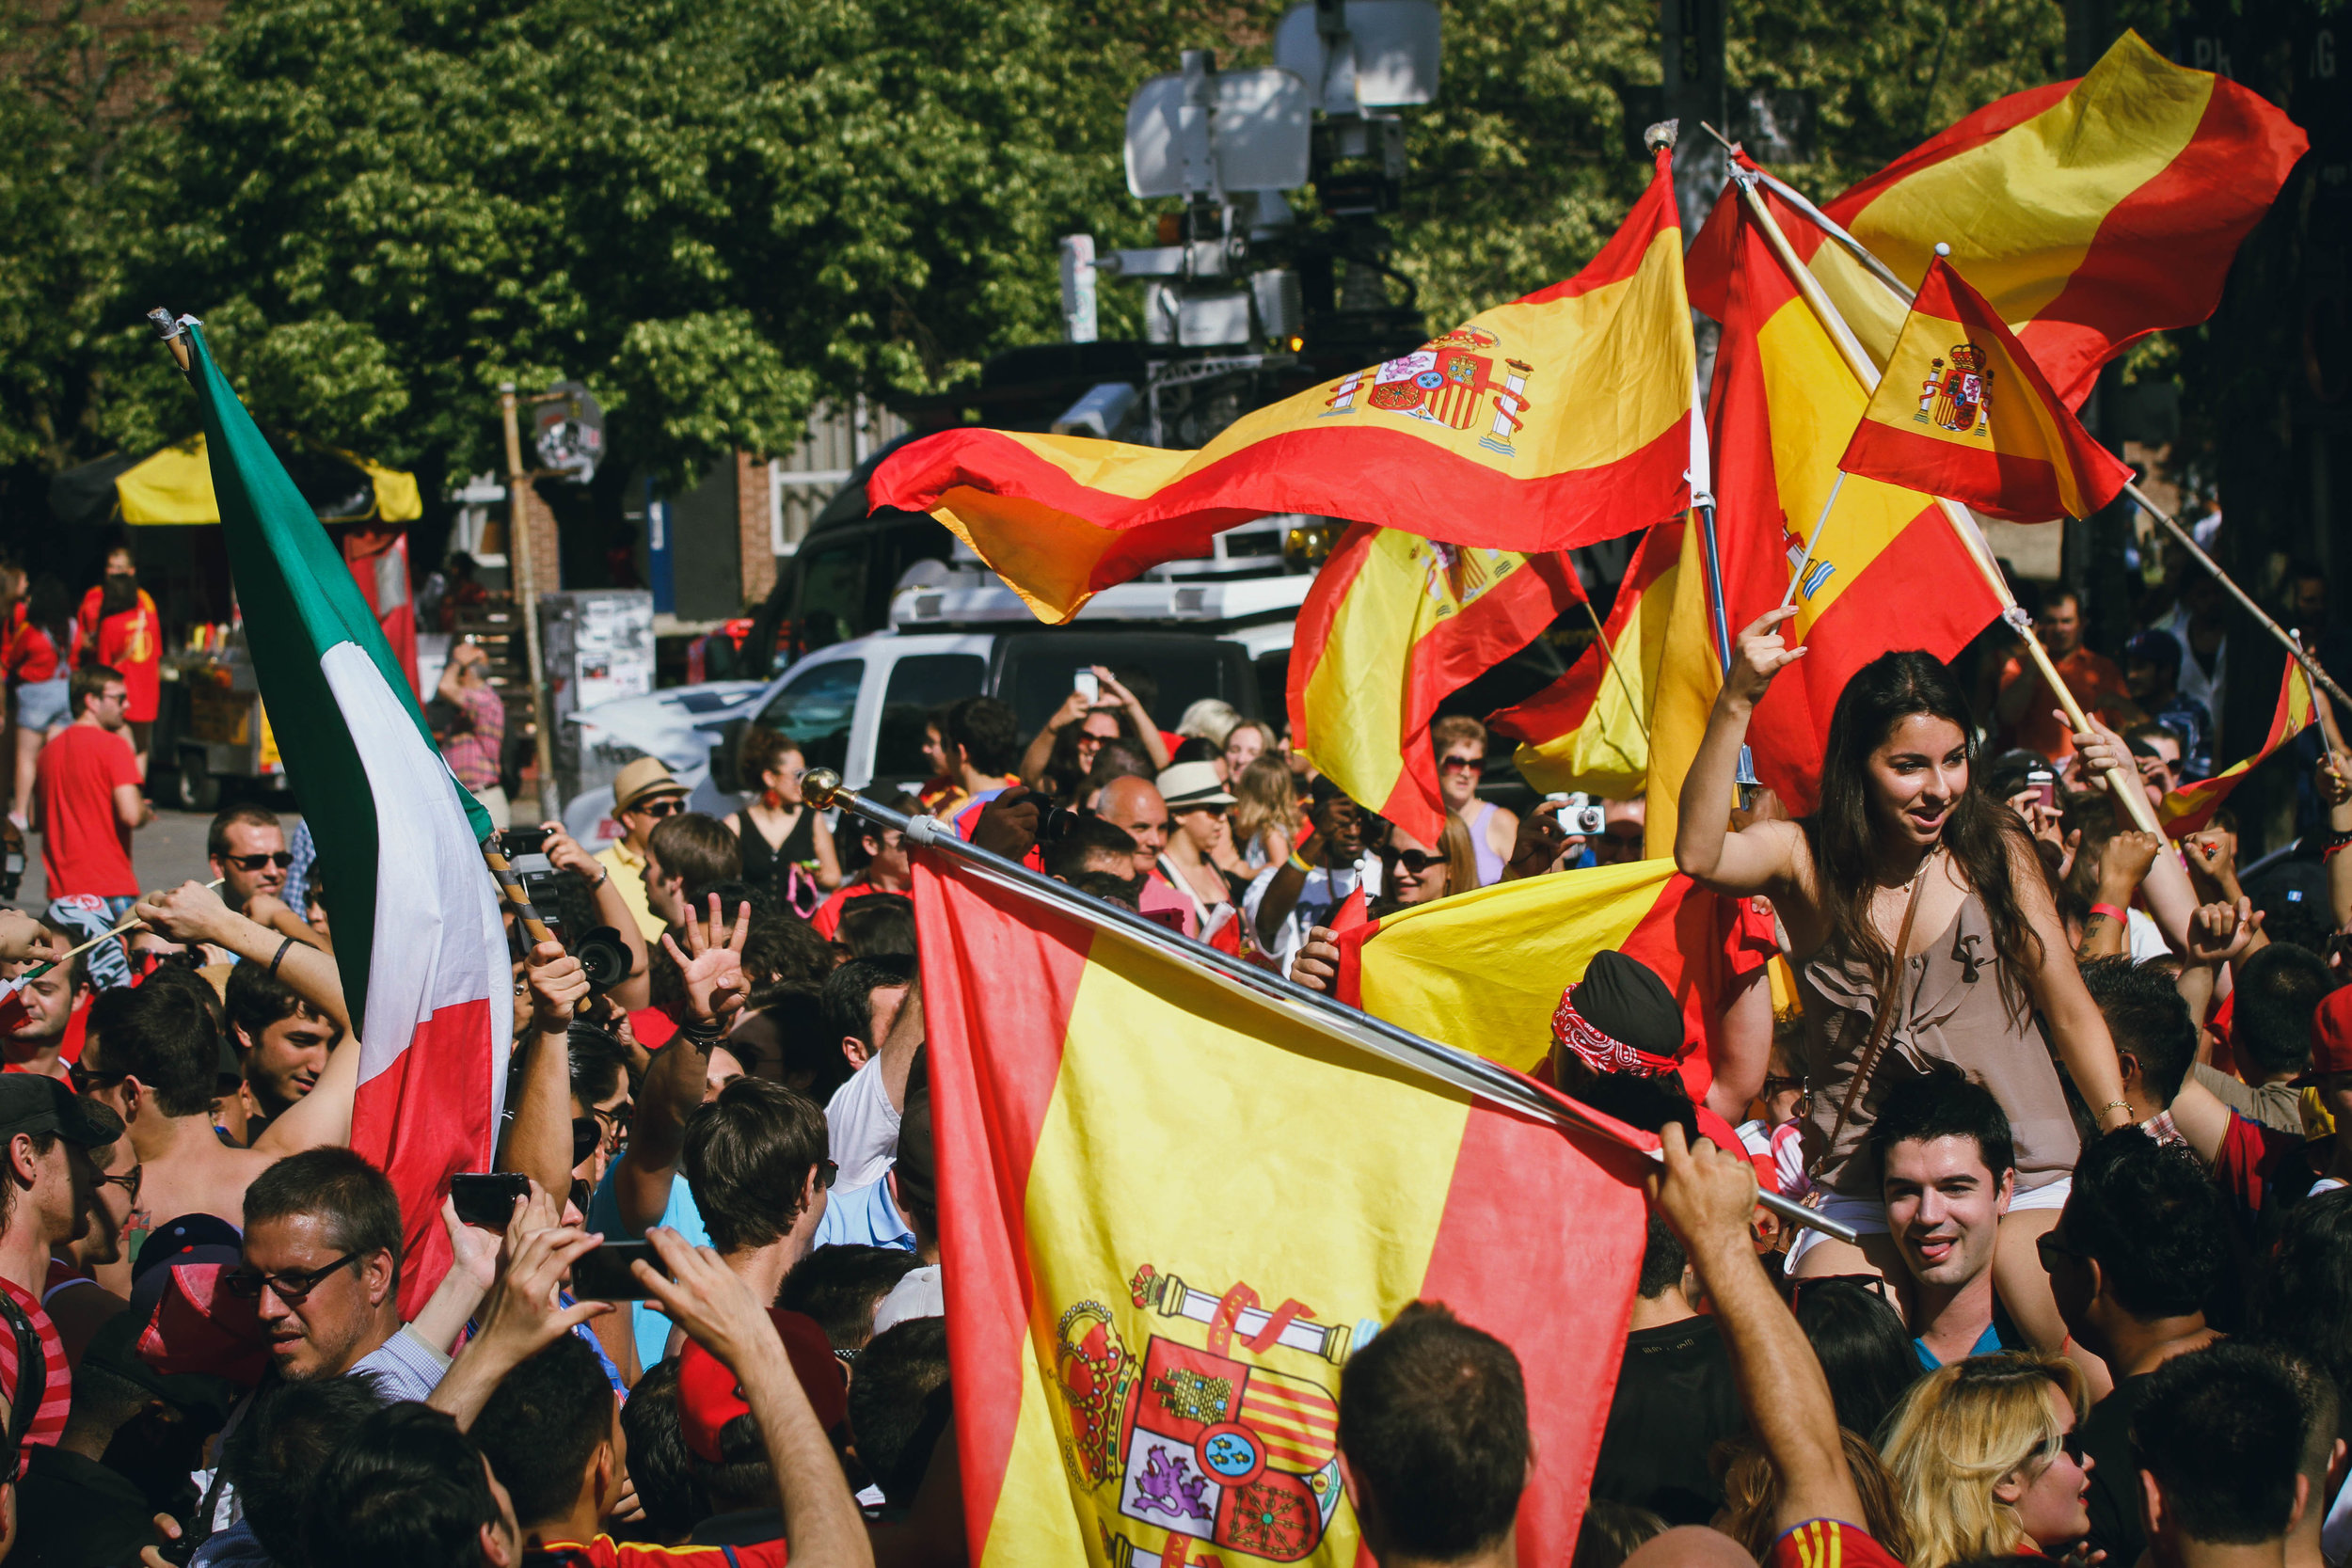 Spain Wins Euro Cup 2012